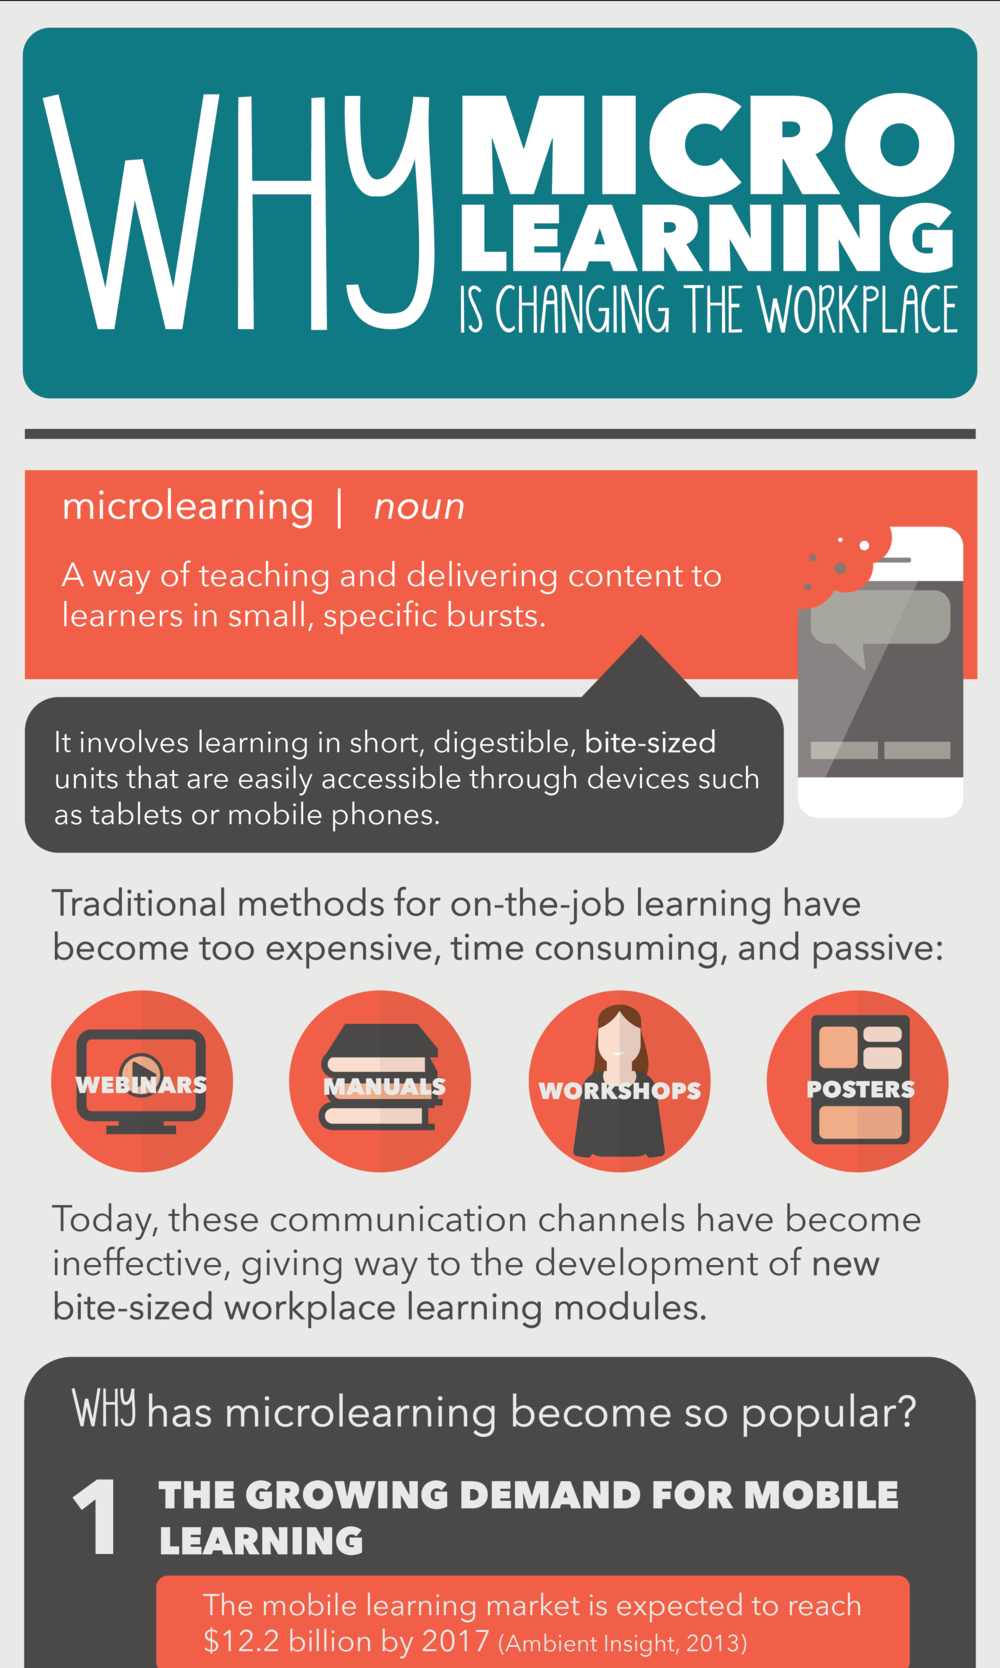 microlearning_infographic.jpg